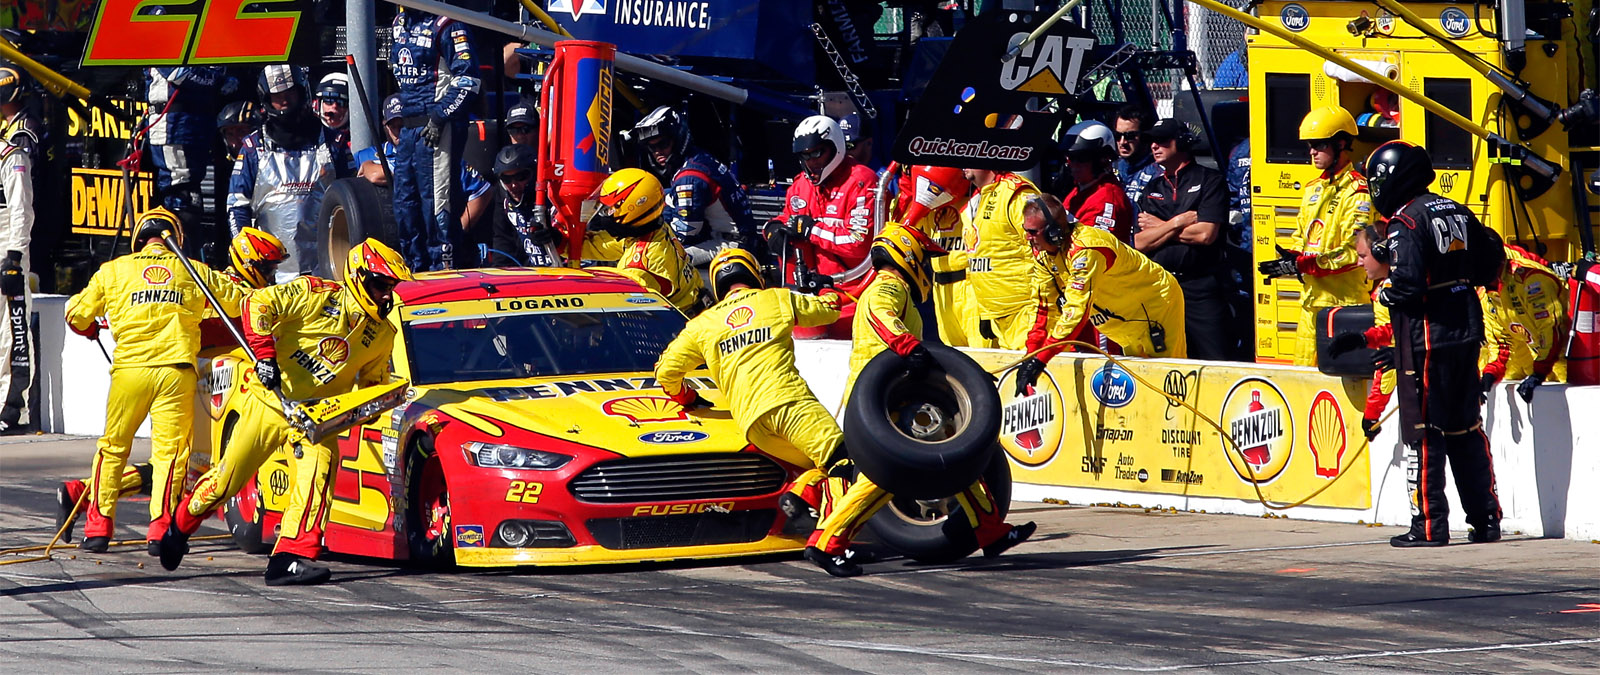 Chicagoland Speedway 2014 Chase Race